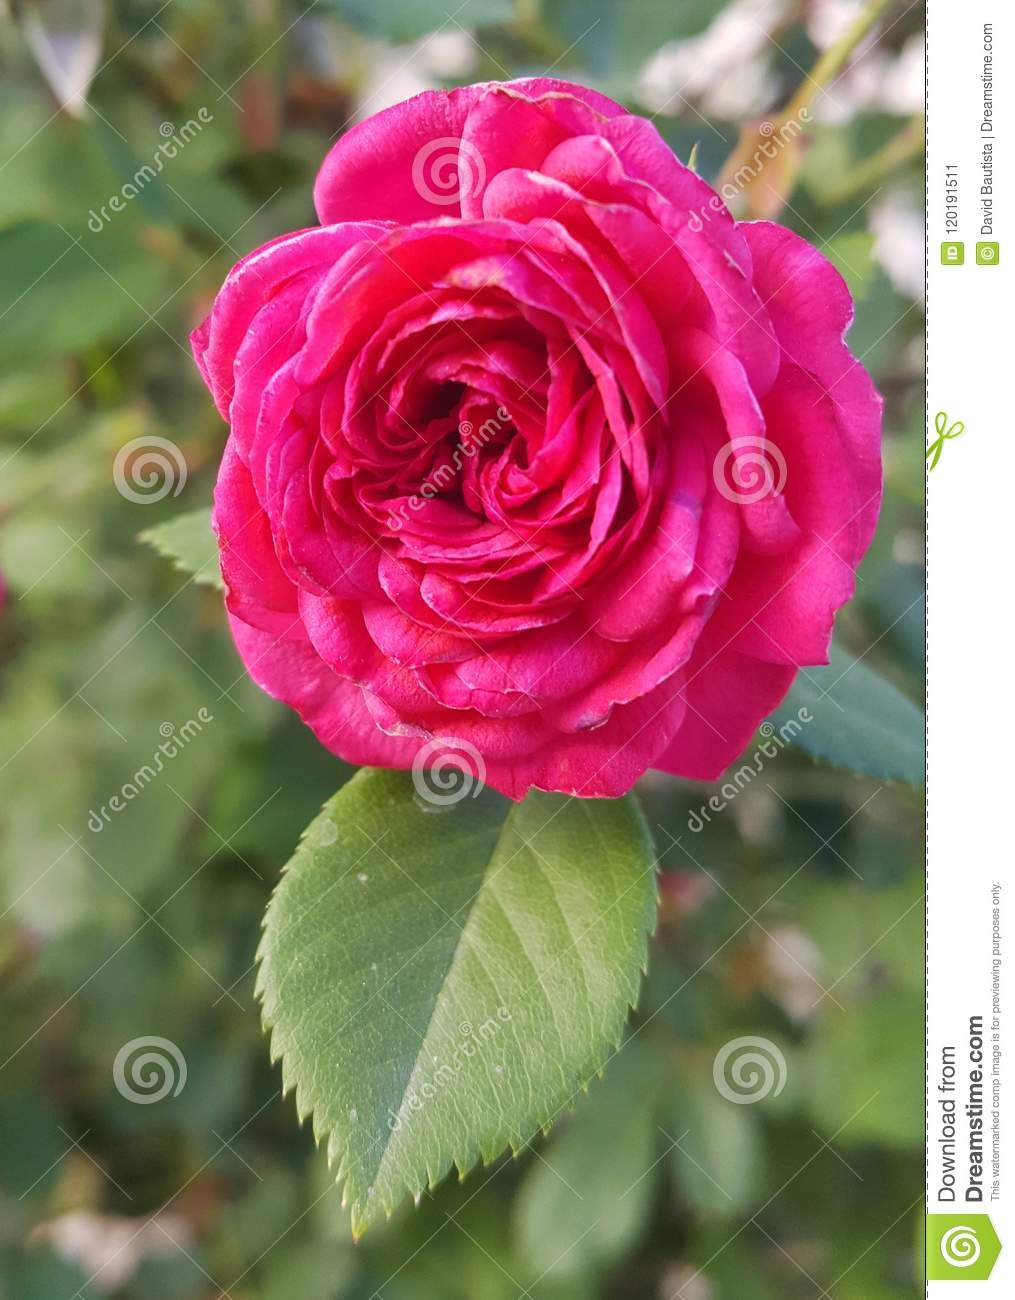 Big Pink Rose Flower With Huge Petals And Pointy Leaf Stock Image